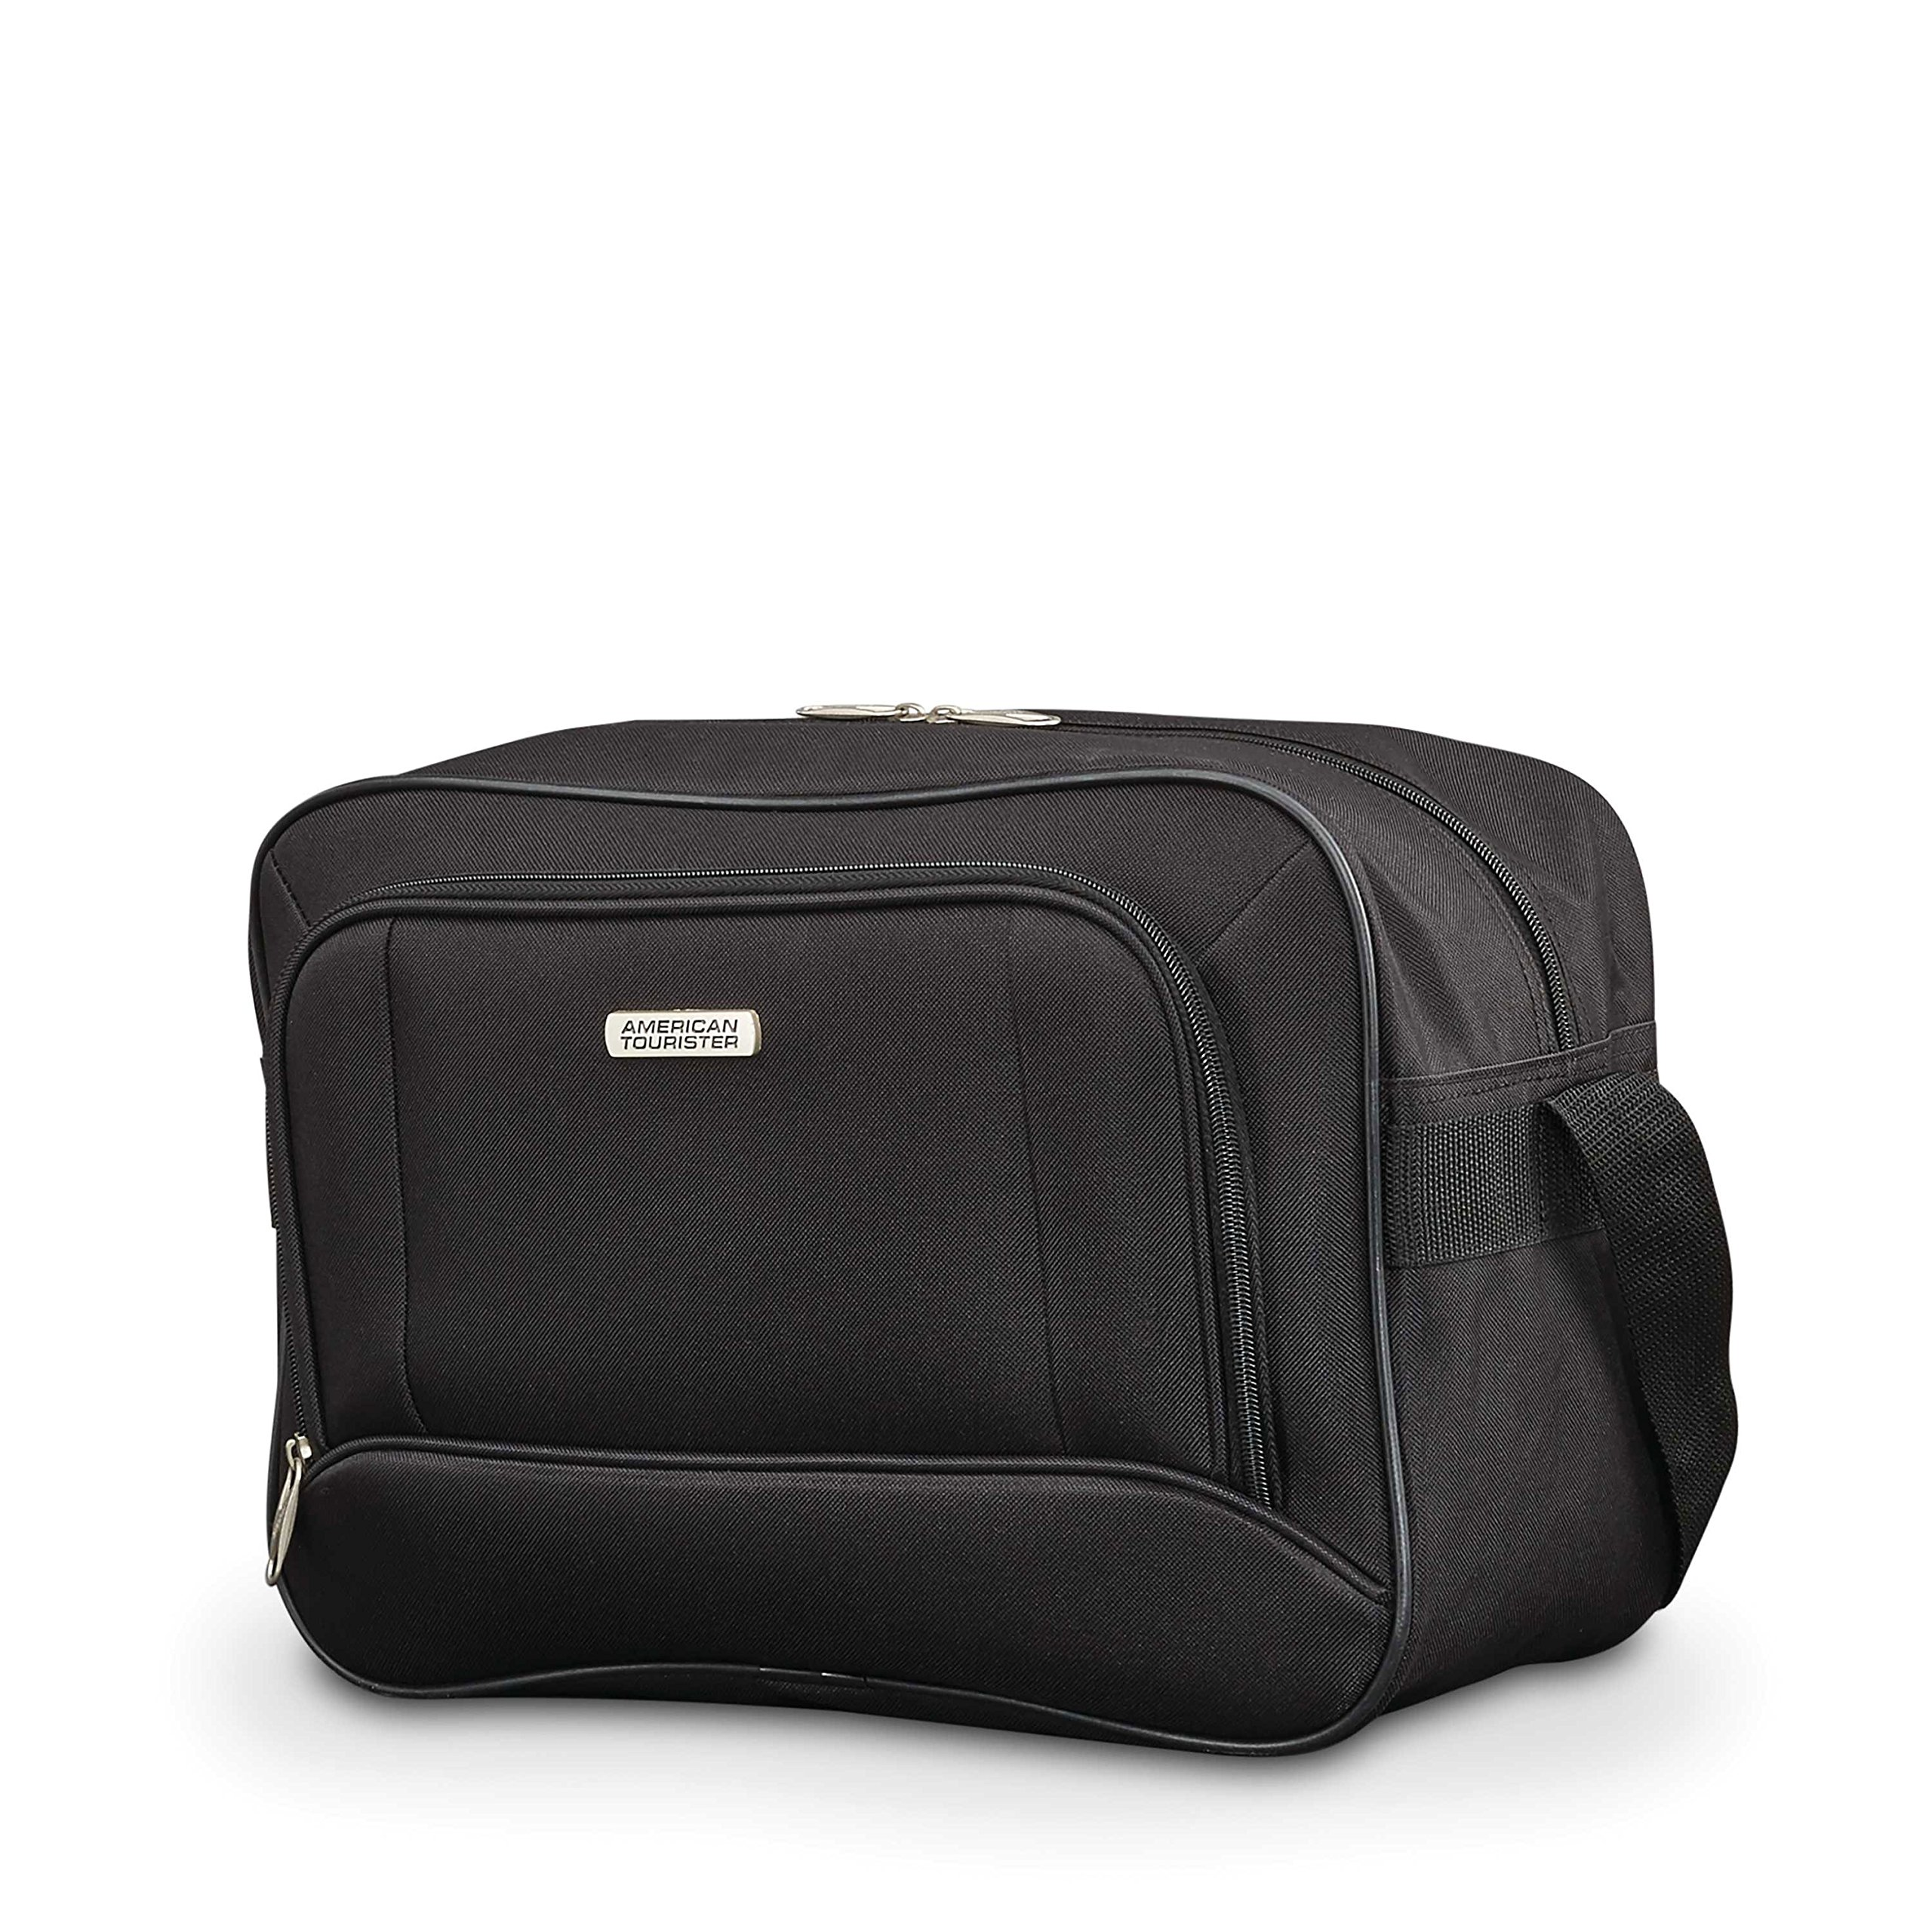 American Tourister Fieldbrook Xlt 4pc Set (Bb/Wh Dfl/ 21/25 Upright), Black by American Tourister (Image #3)